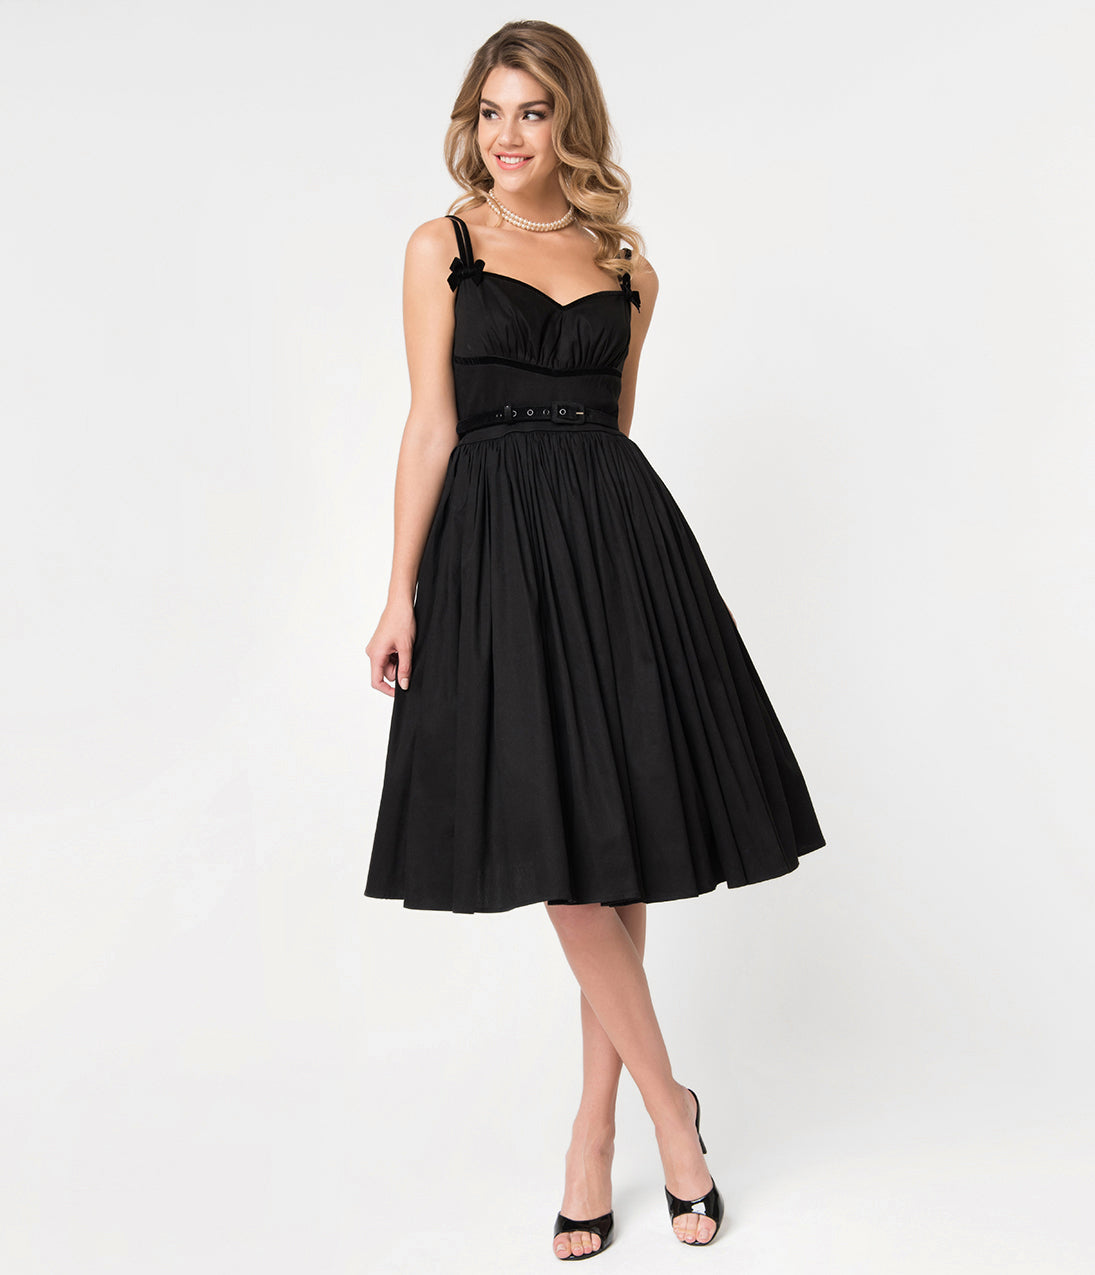 1950s Swing Dresses | 50s Swing Dress Alice Swing Dress $128.00 AT vintagedancer.com